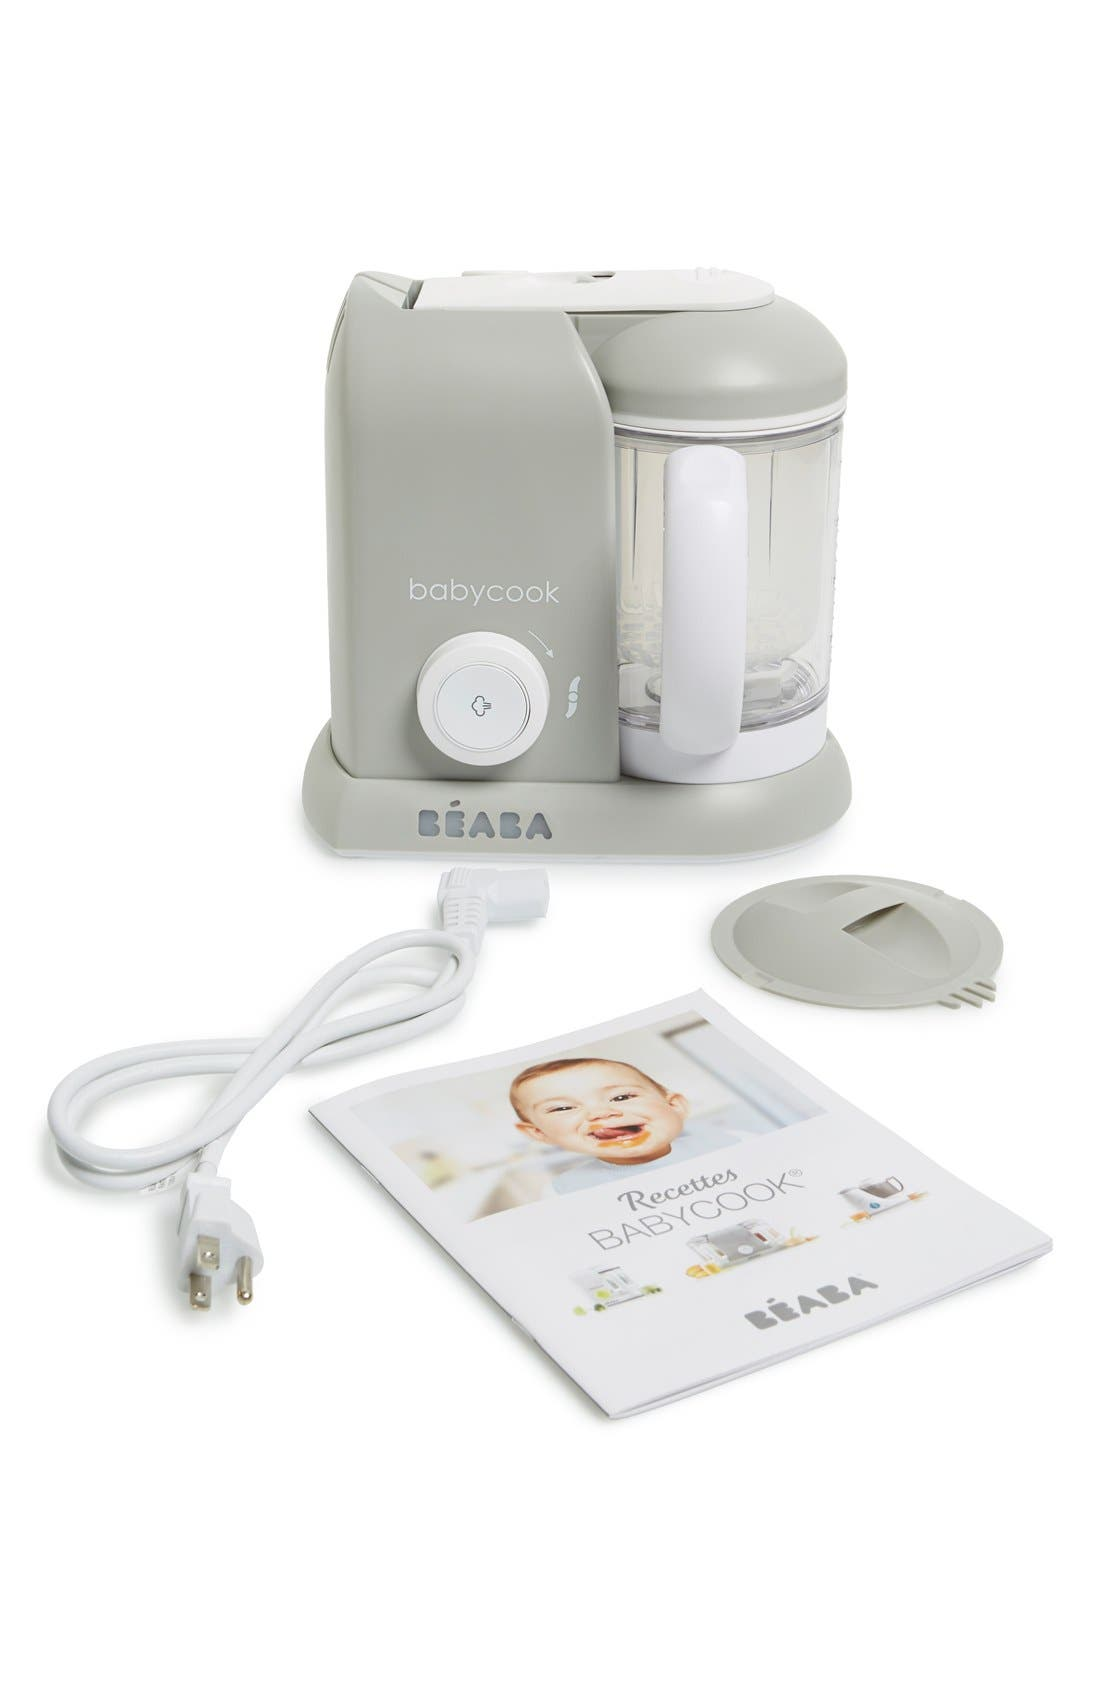 BÉABA 'Babycook®' Baby Food Maker & Recipe Booklet